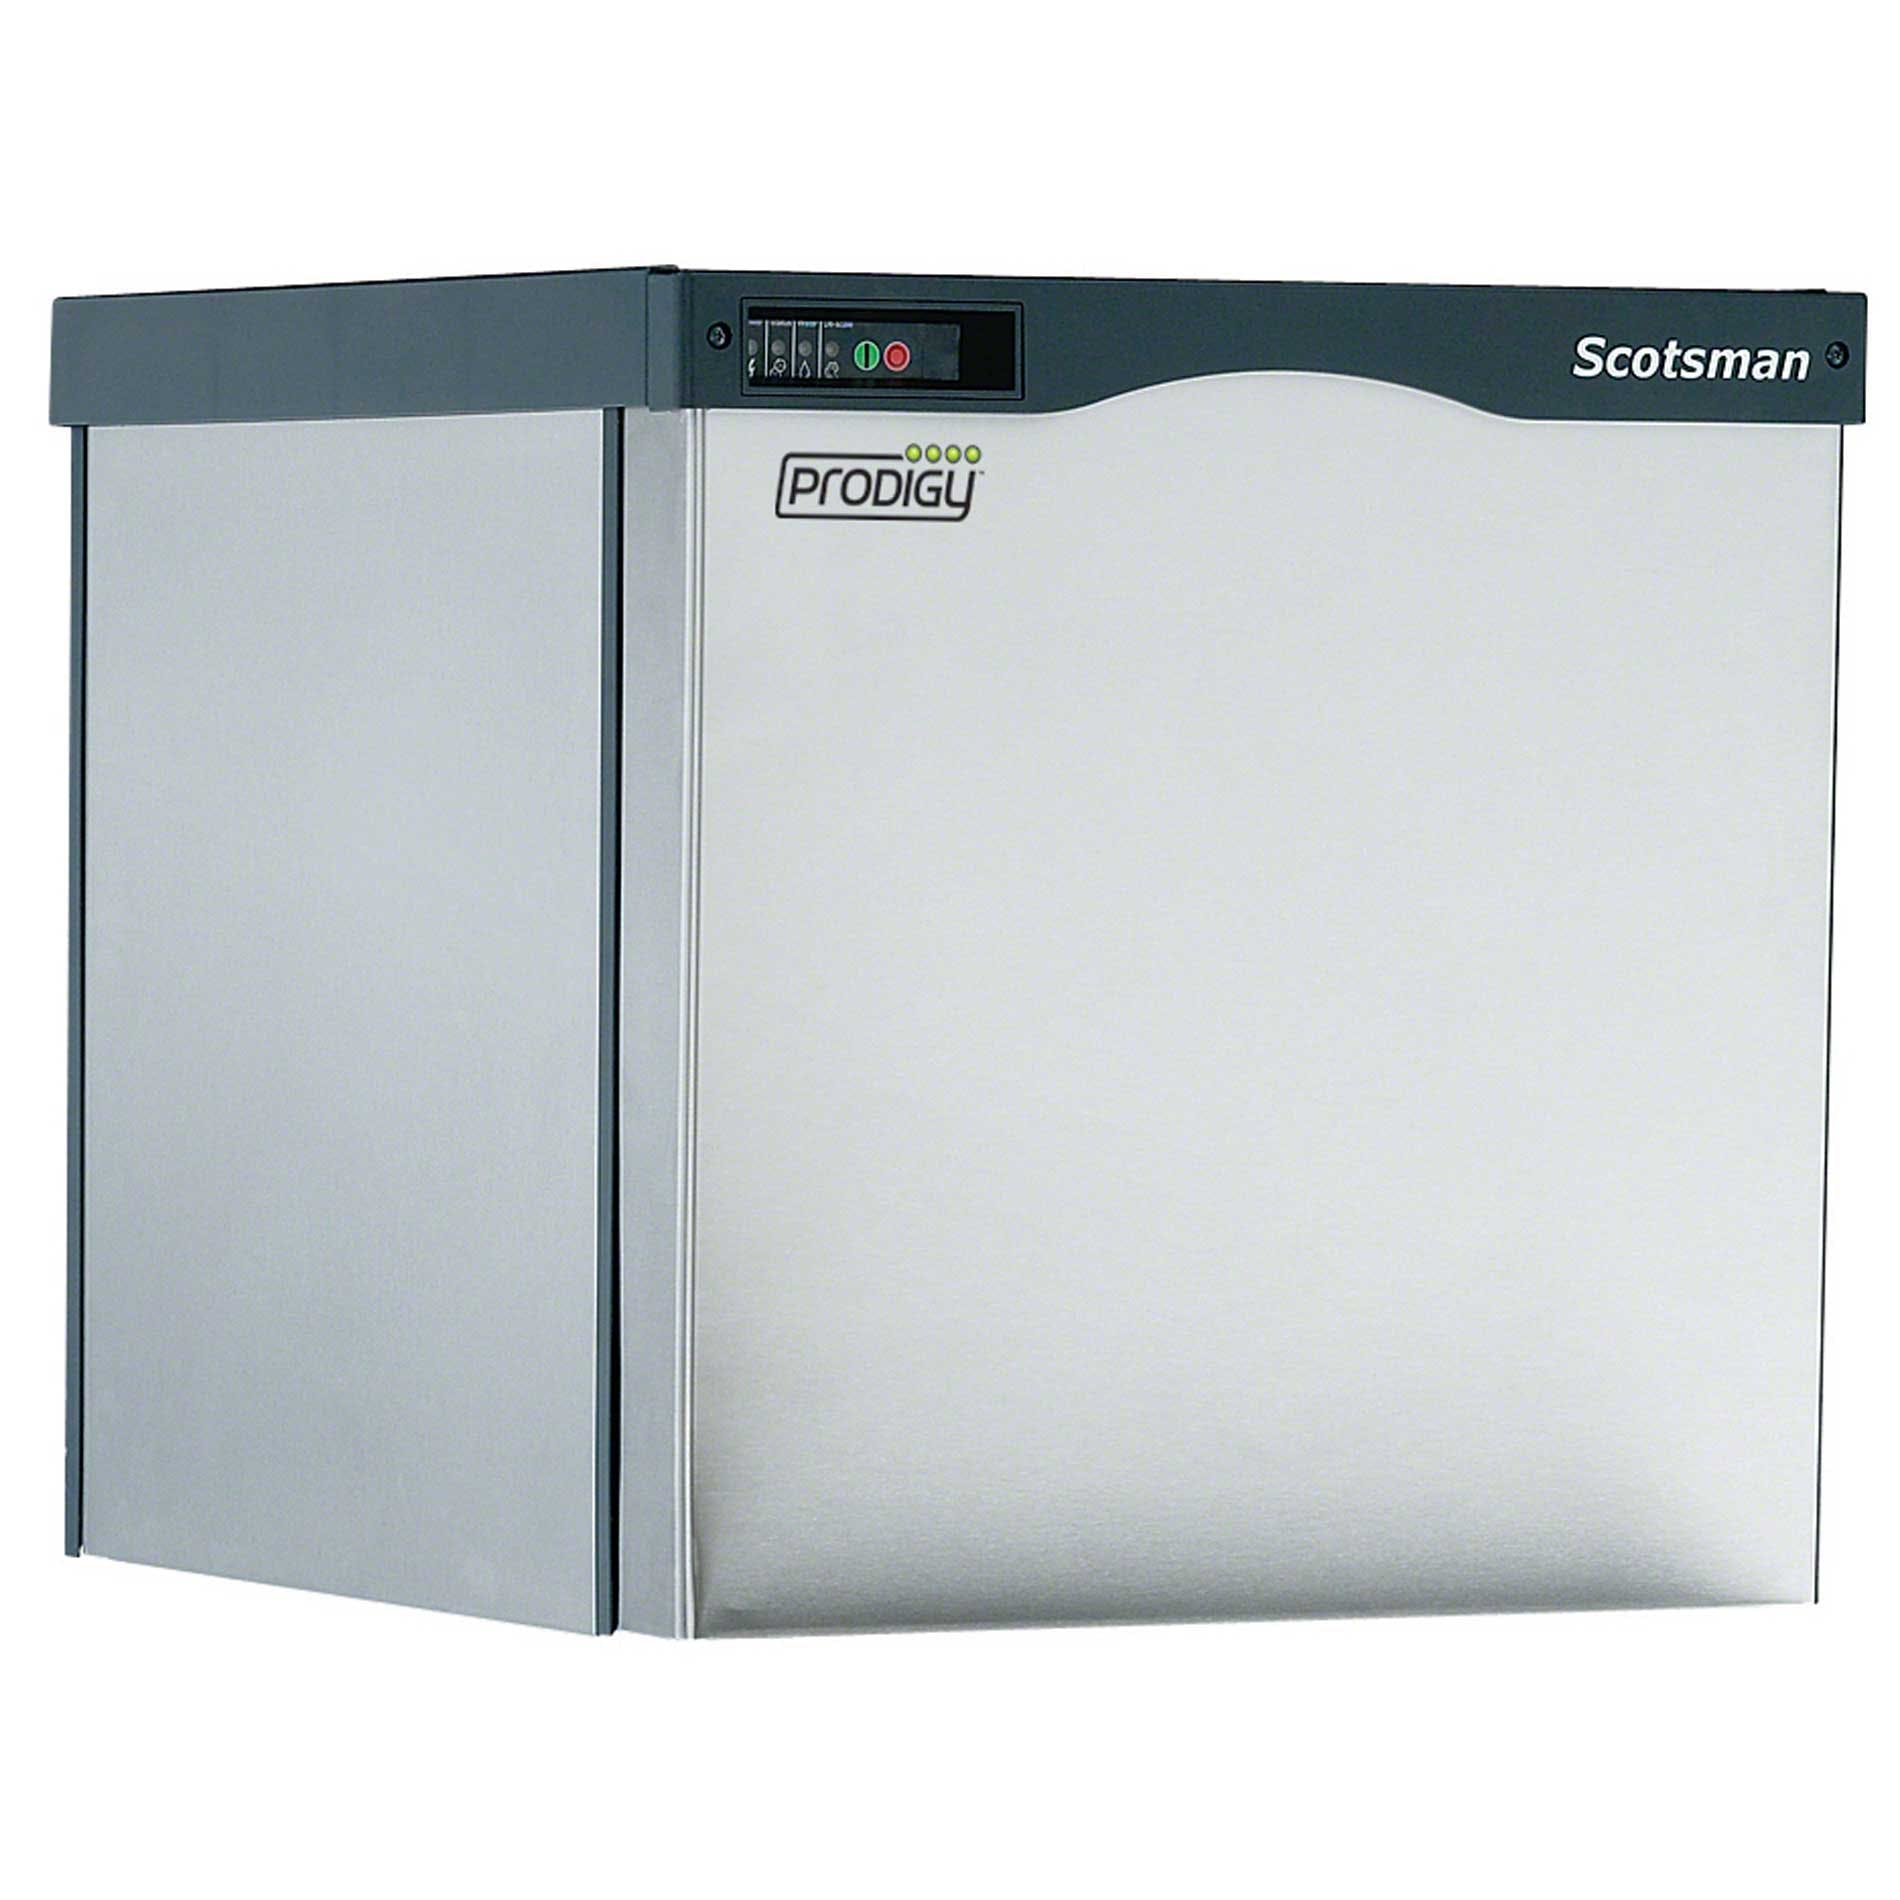 Scotsman - C0522SW-32 500 lb Modular Cube Ice Machine - Prodigy® Series Ice machine sold by Food Service Warehouse